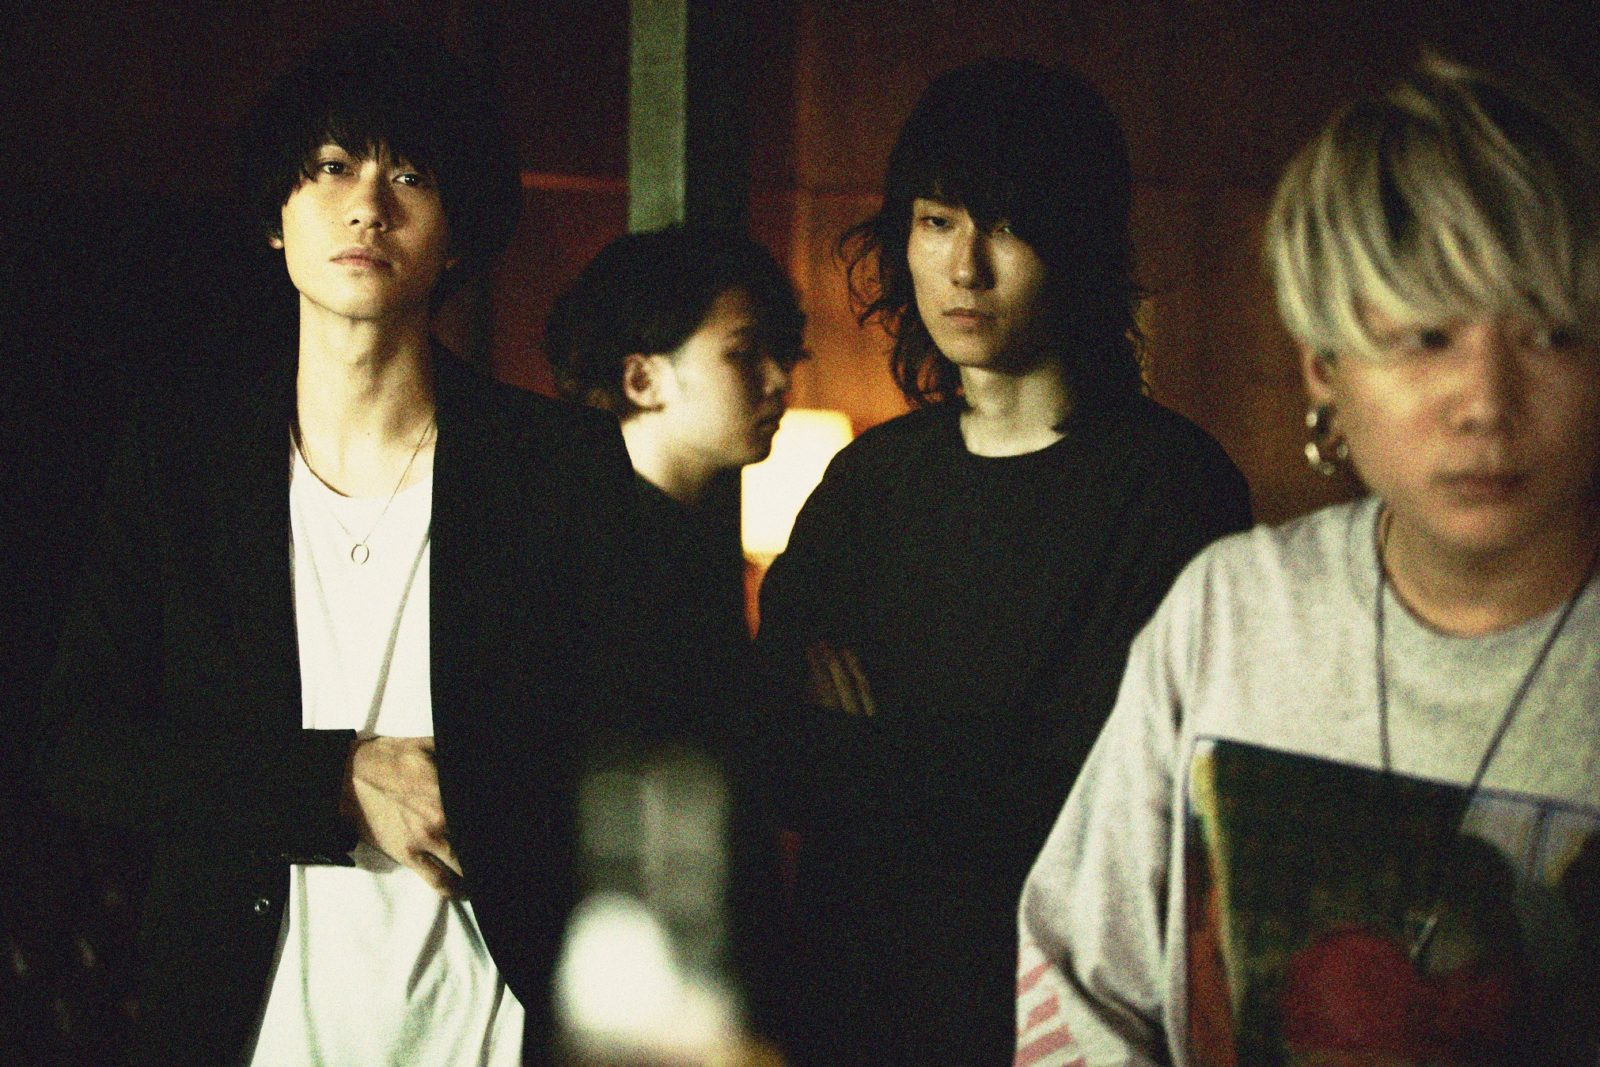 Ivy to Fraudulent Game 寺口宣明(Vo./Gt)のLINE LIVE番組「歌と雑談」生配信決定サムネイル画像